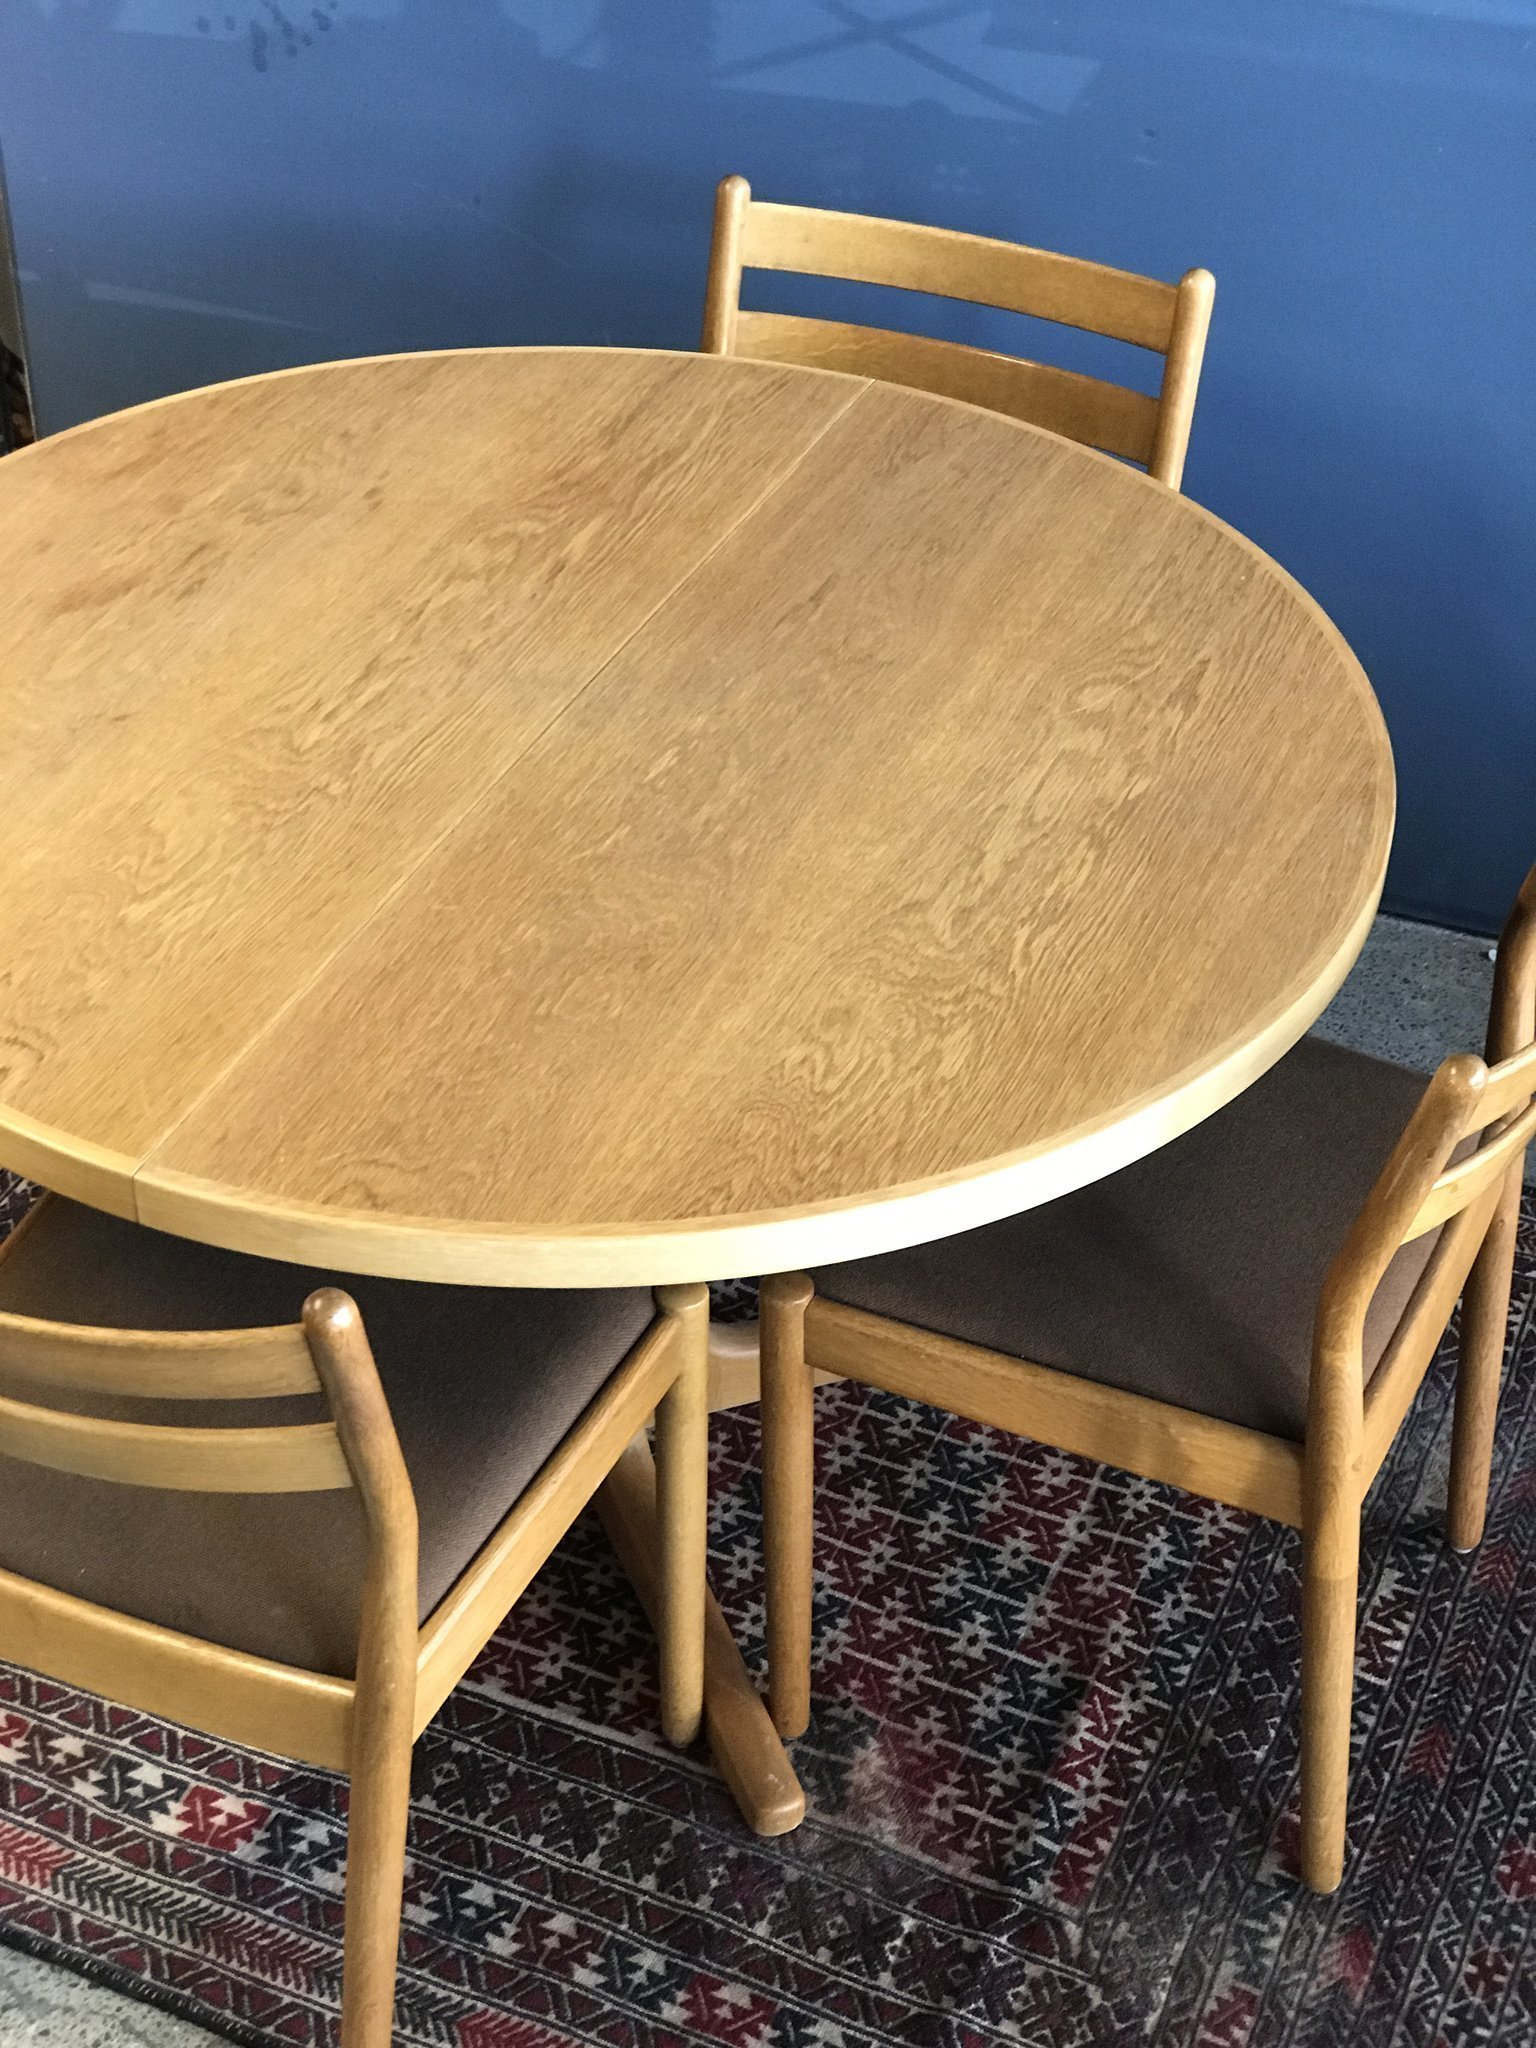 Danish Mid Century Oak Dining Table And Chairs Poul Volther J61 Henning Kjaernulf